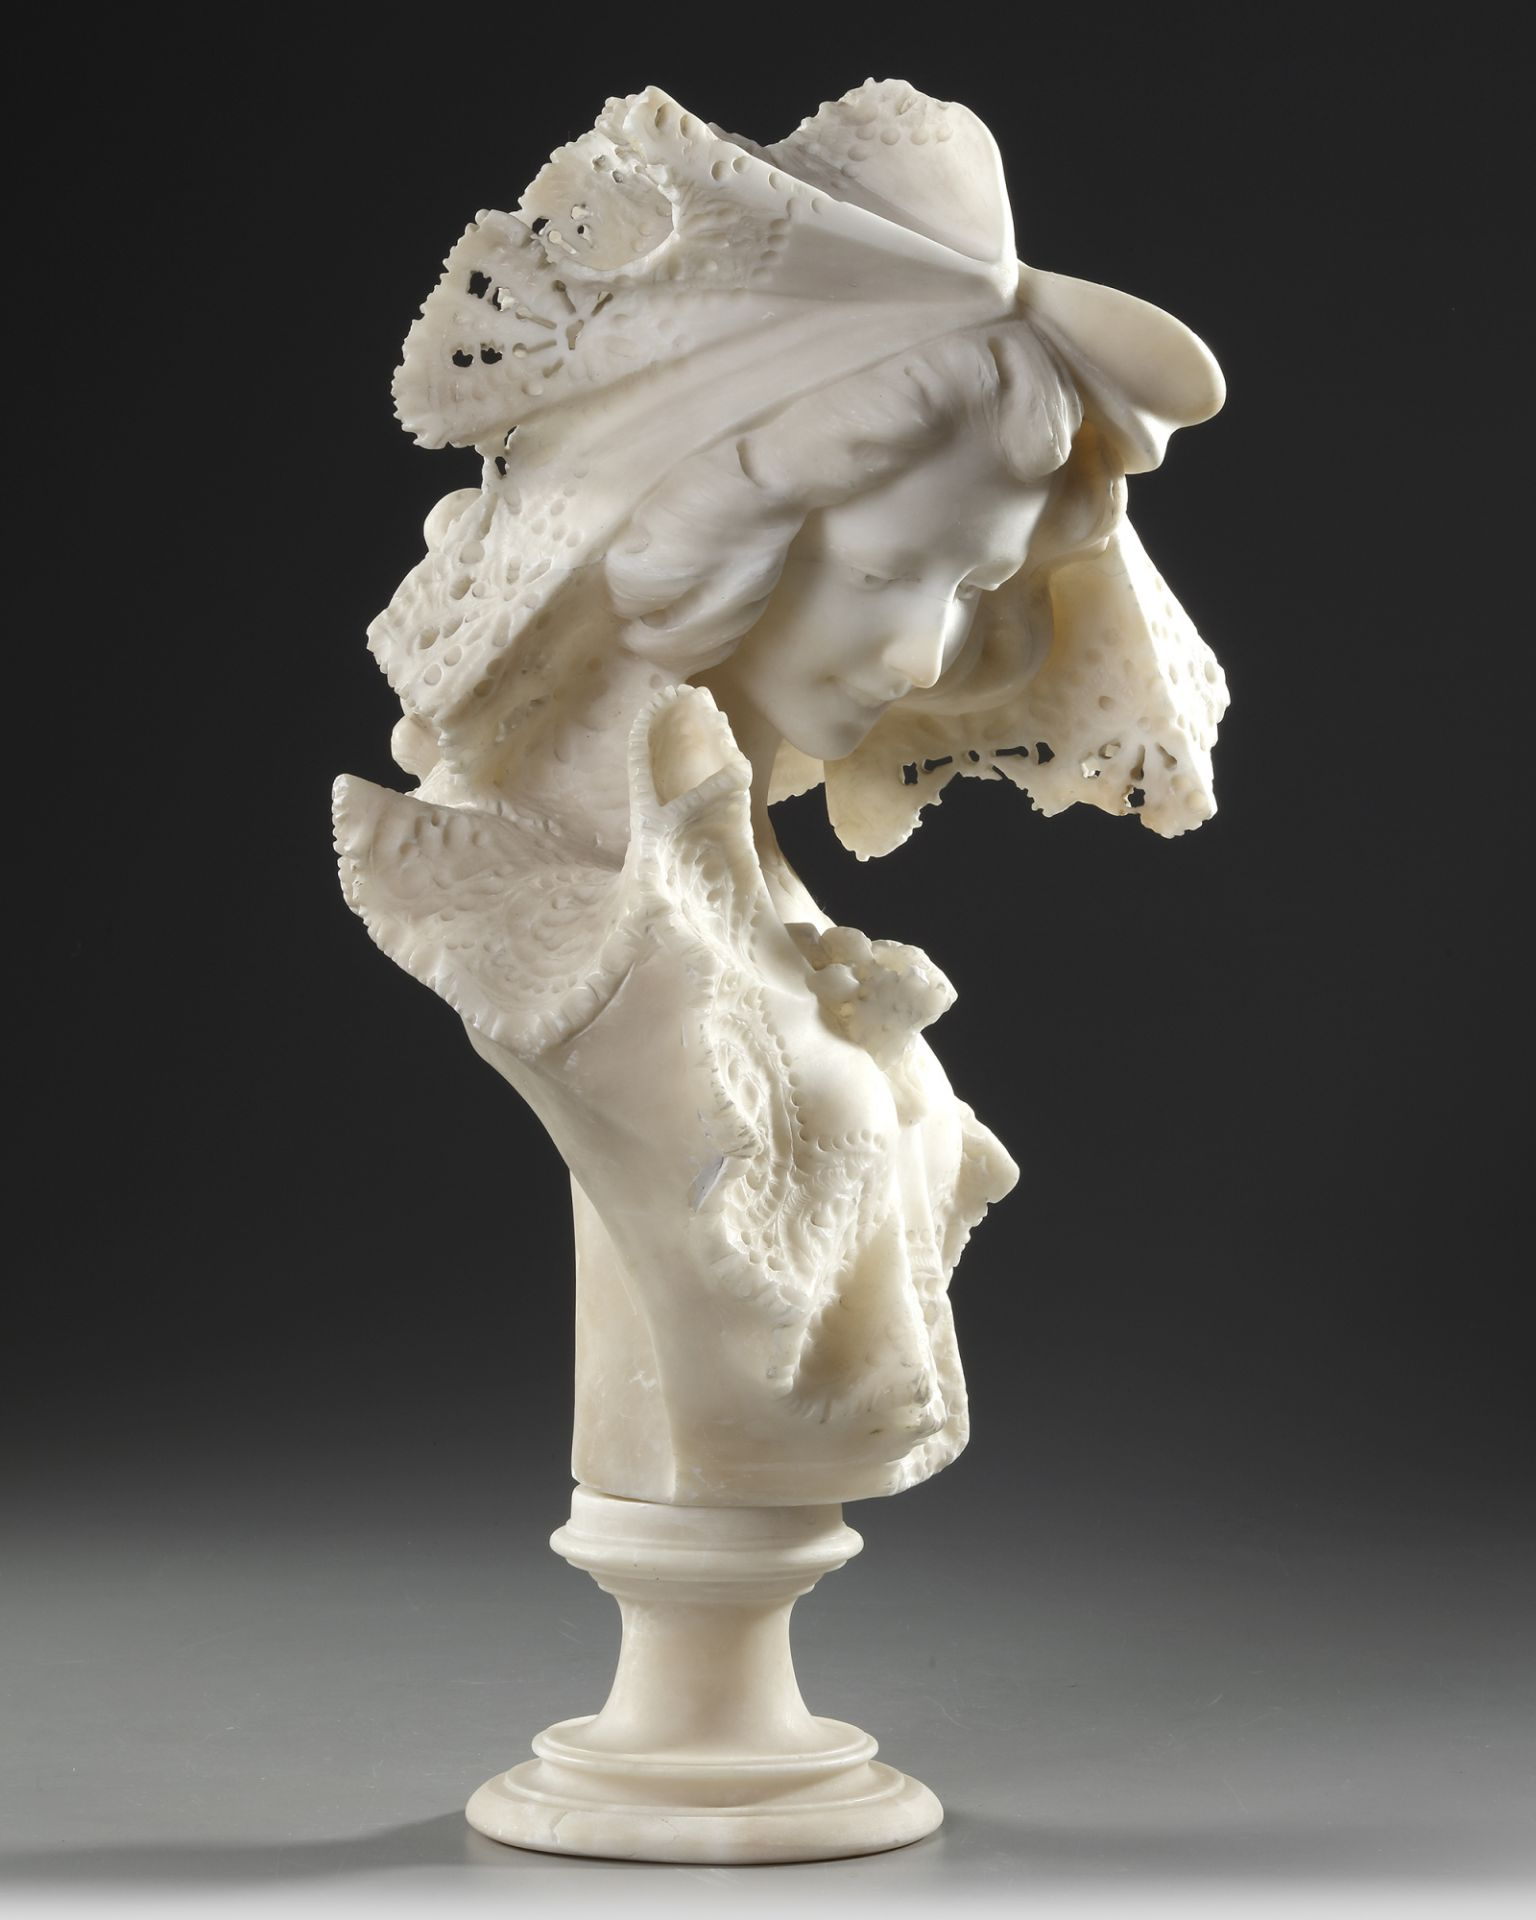 AN ALABASTER BUSTE, LATE 19TH CENTURY - Image 3 of 5